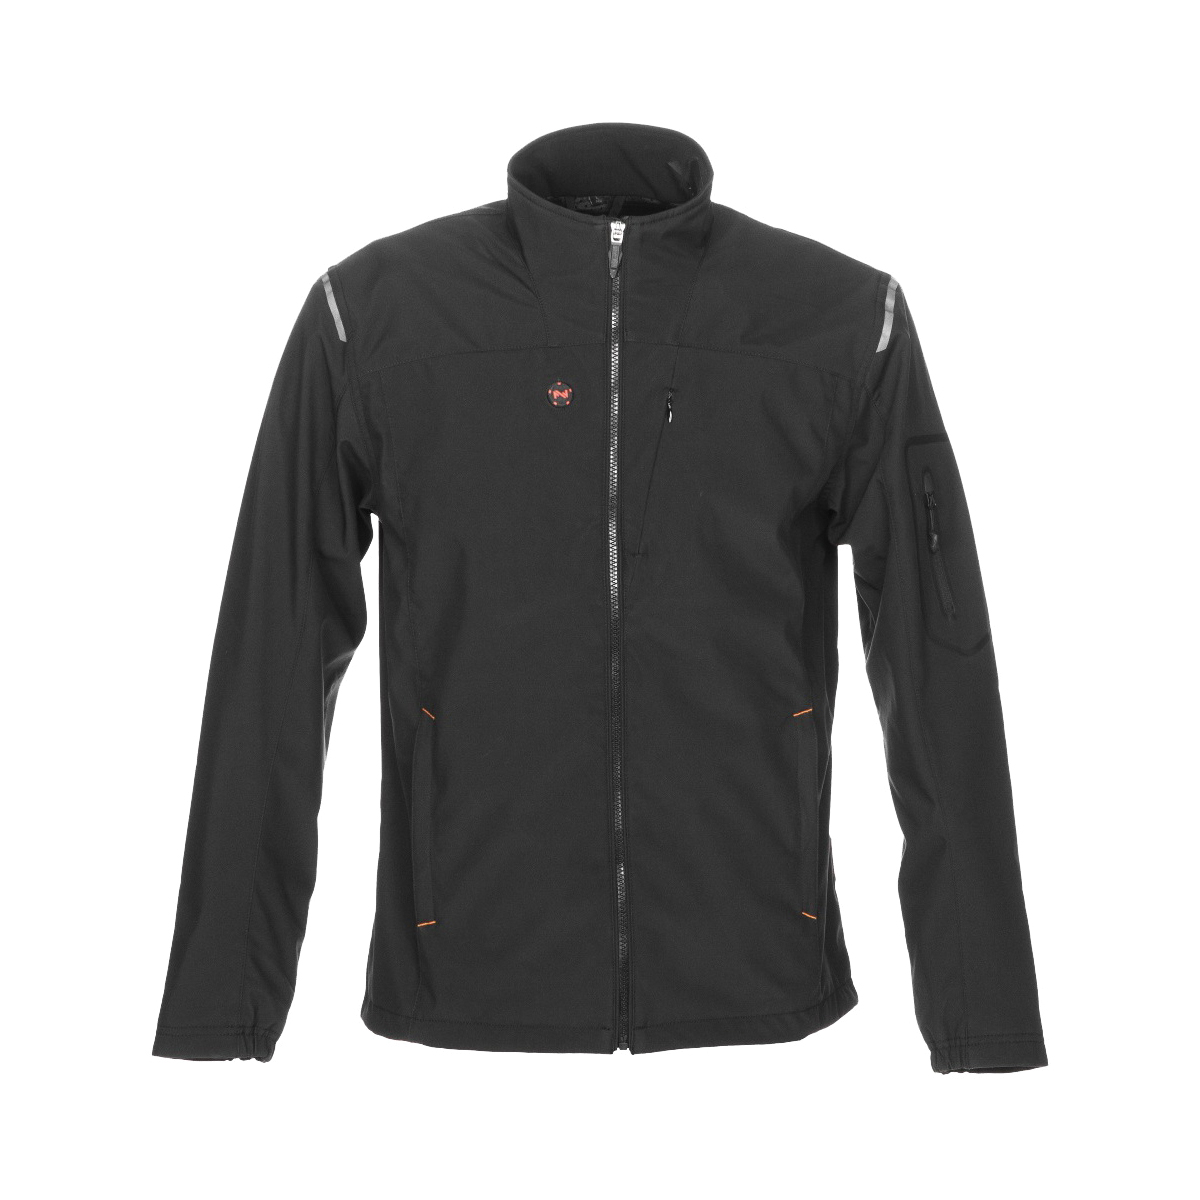 Picture of Mobile Warming MWJ16M07-LG-BLK Heated Jacket, L, Men's, Fits to Chest Size: 42 in, Fabric, Black